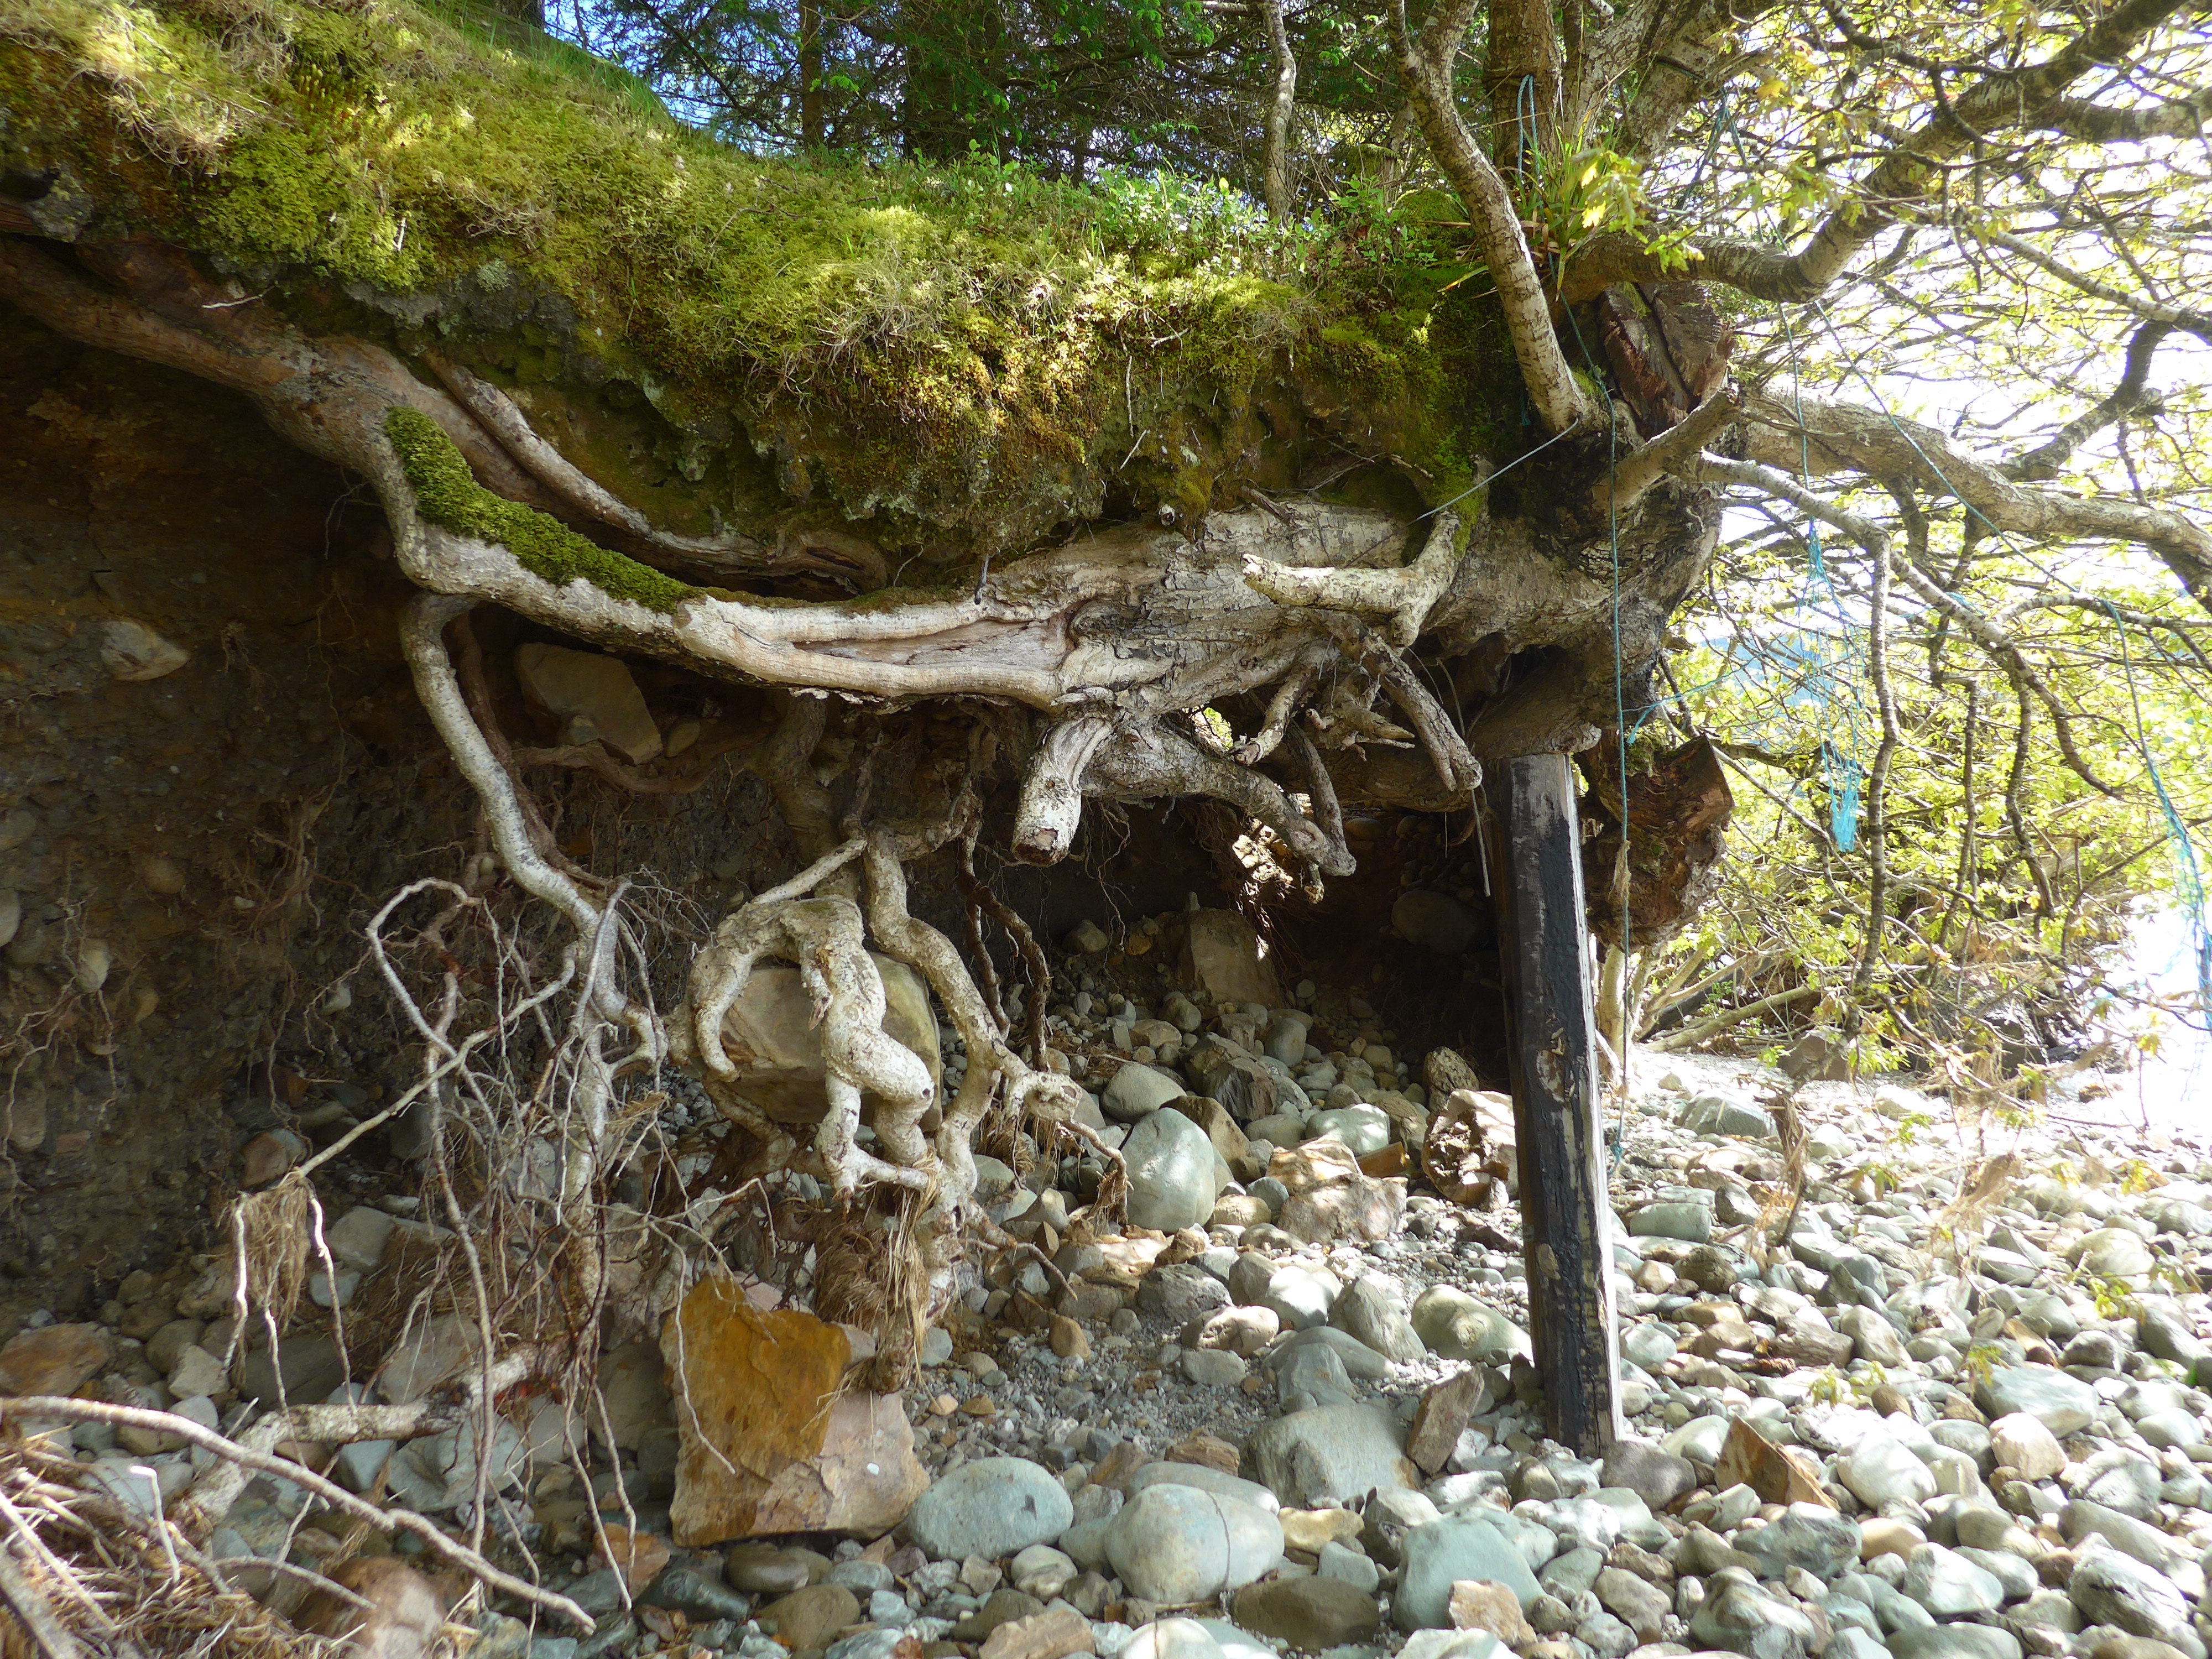 Tree roots and beach in Scotland photograph by Diane Young Artist from Stroud